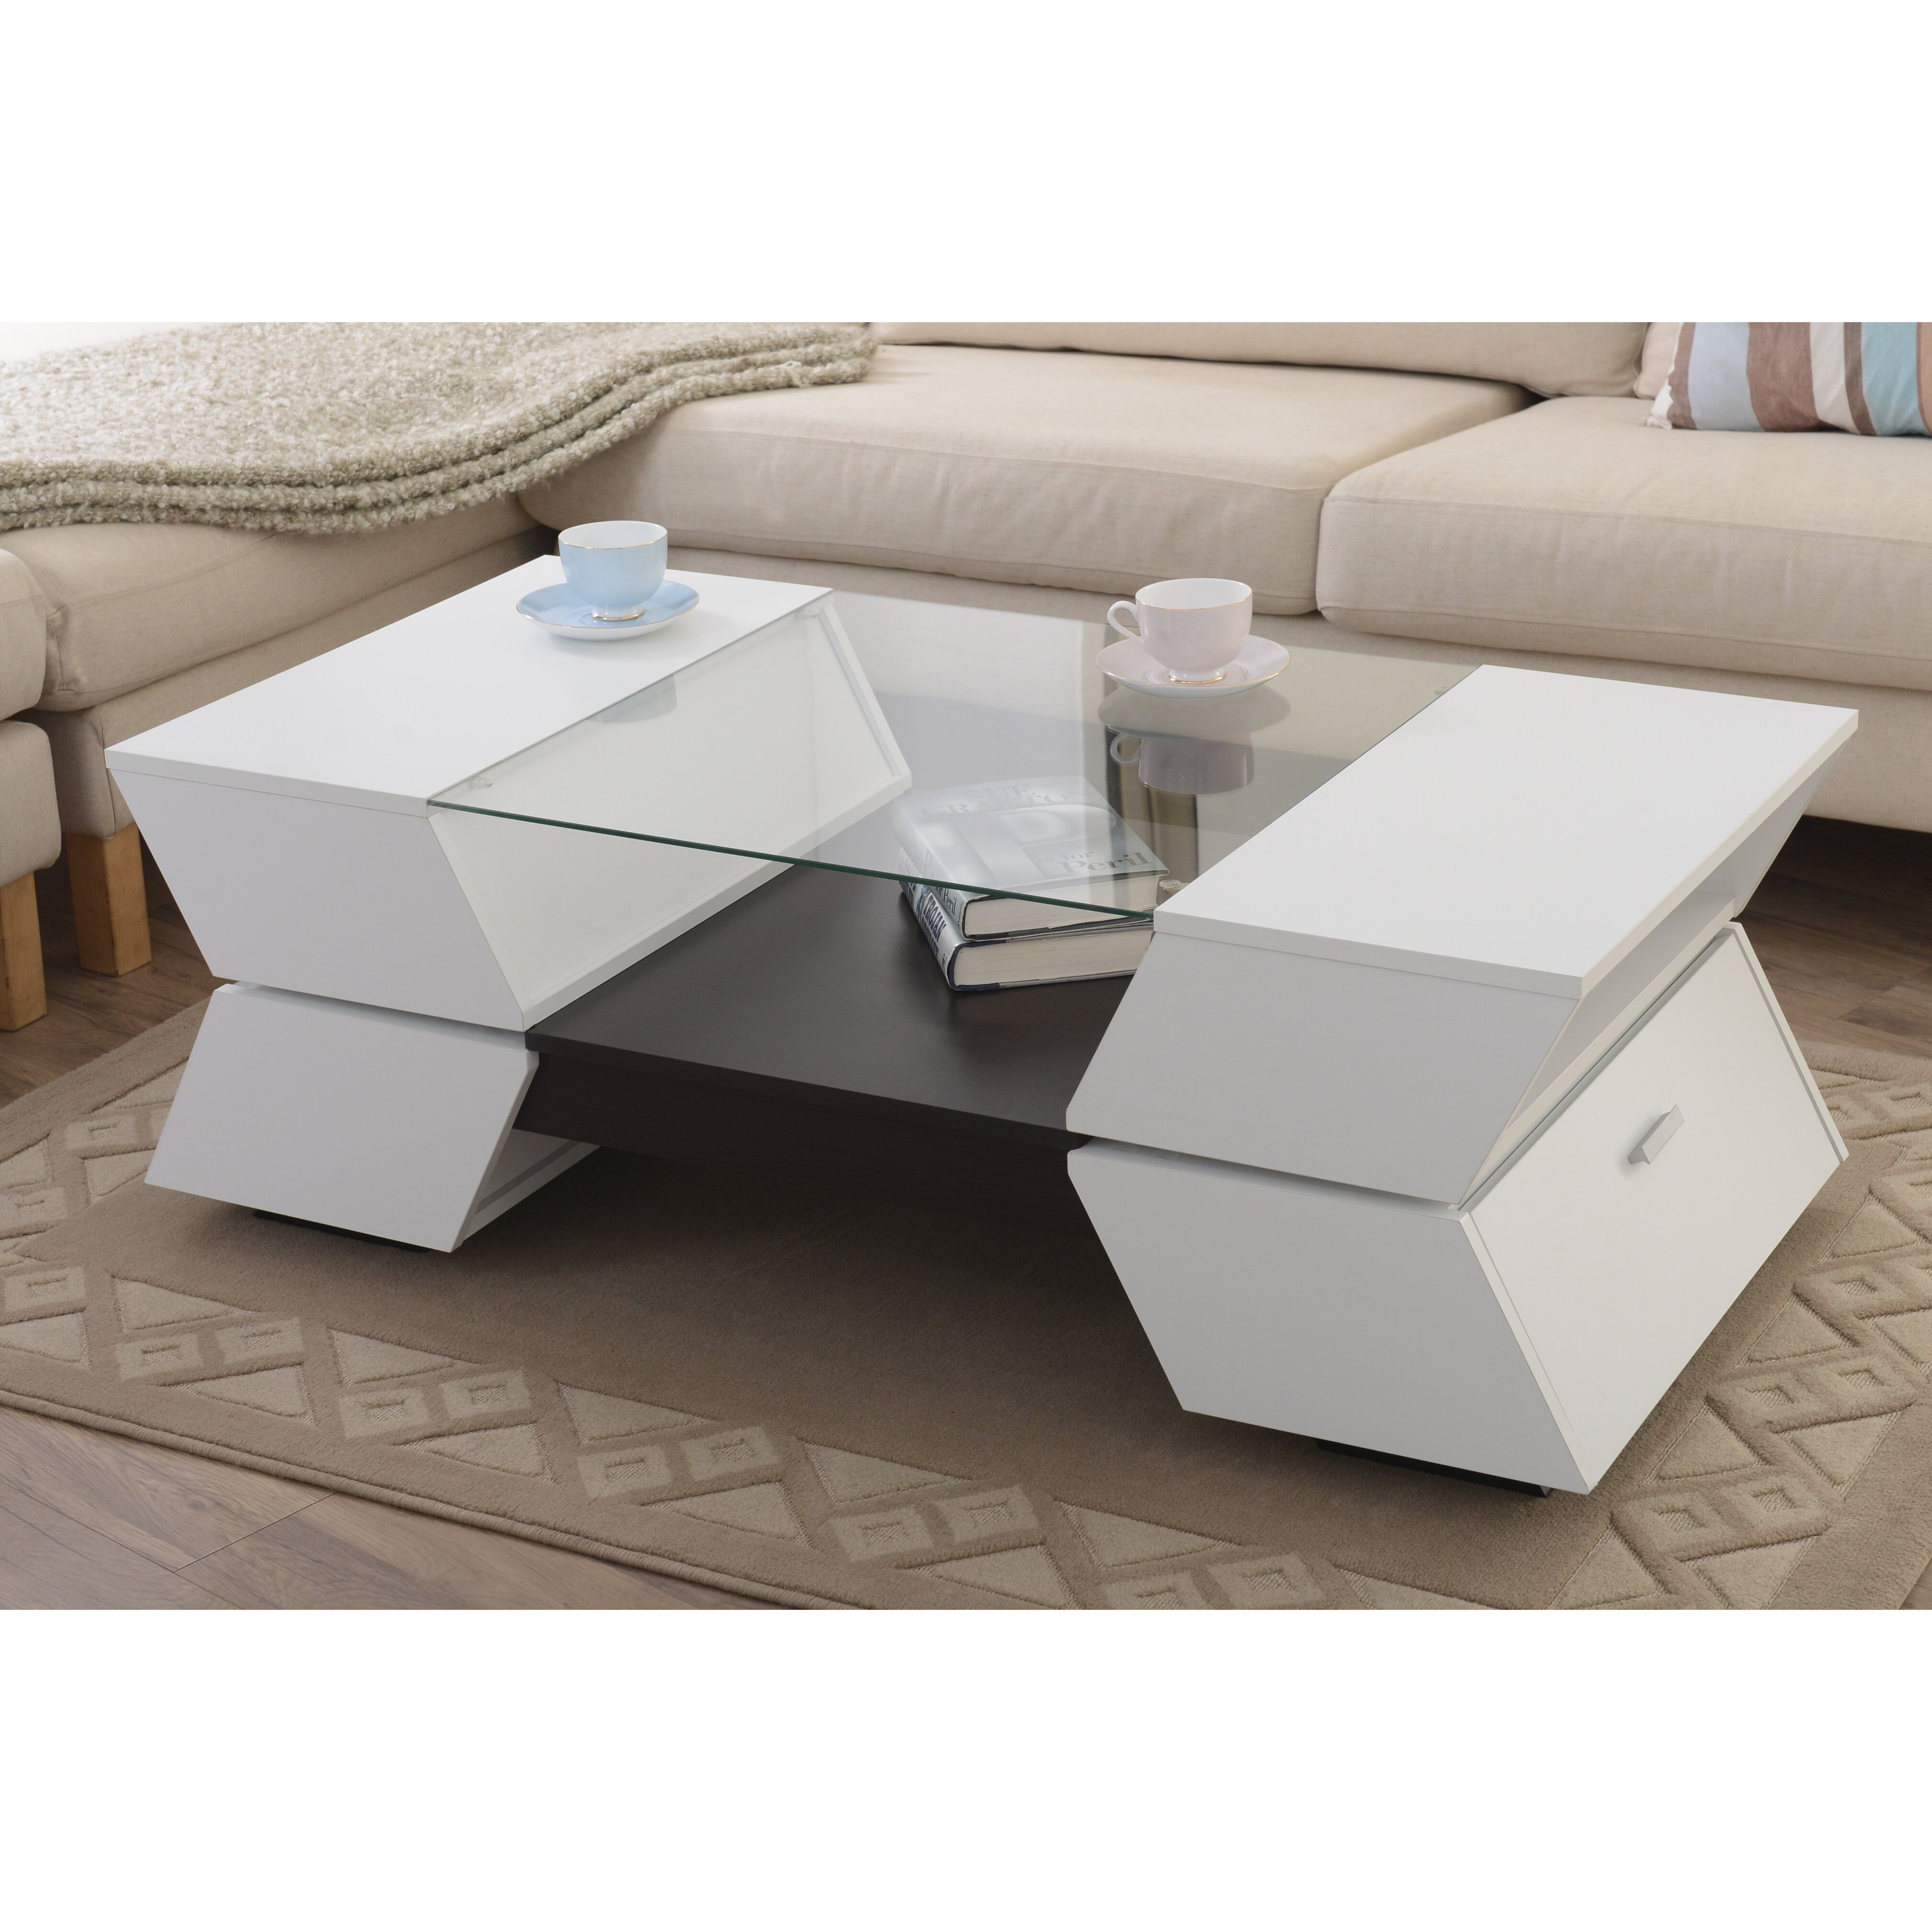 Hokku Designs Piazza Coffee Table Reviews Wayfair